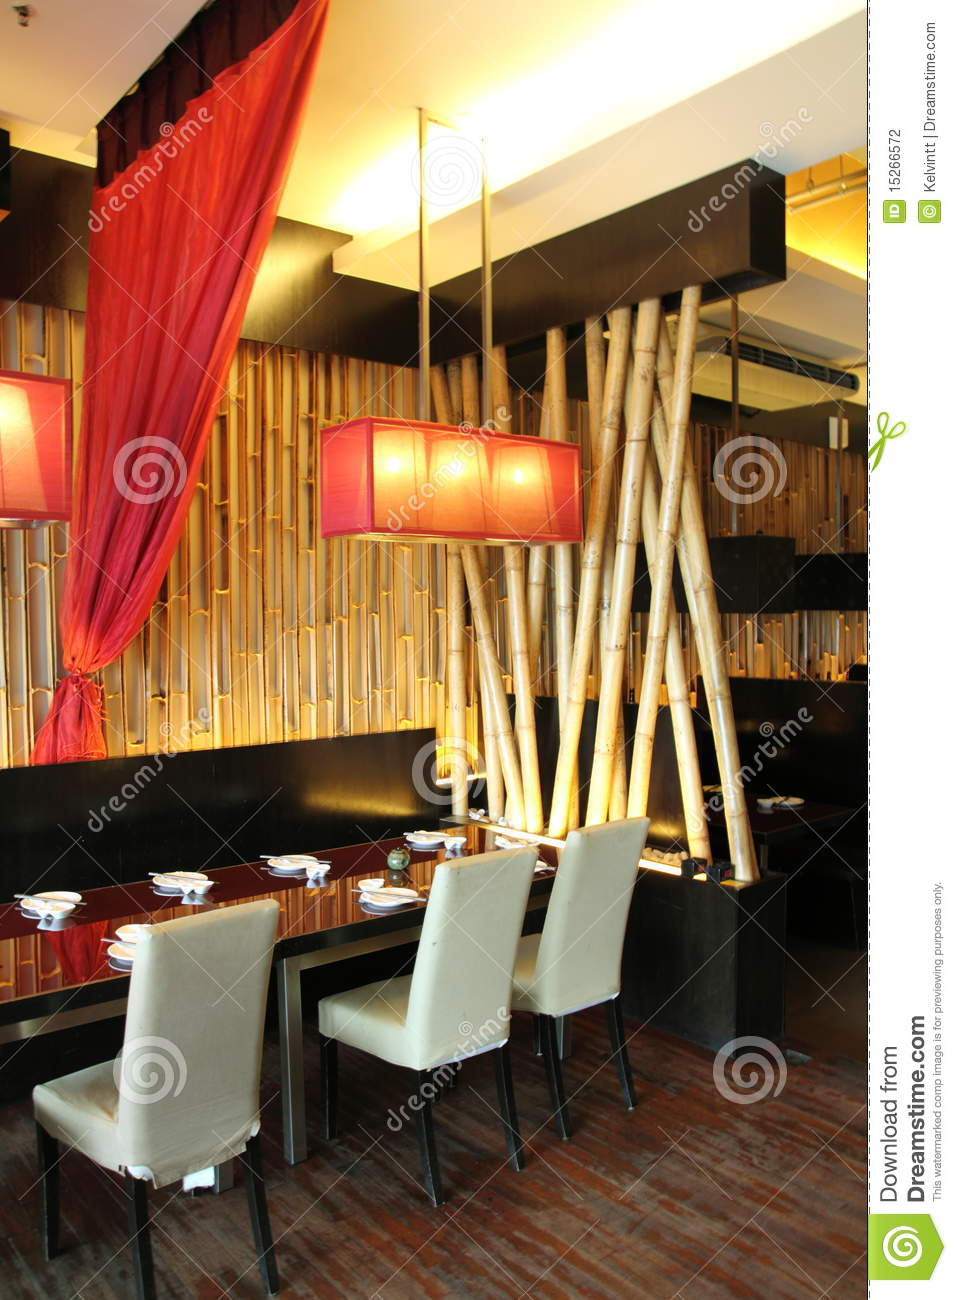 Restaurant interior design stock photography image 15266572 for Image of interior design